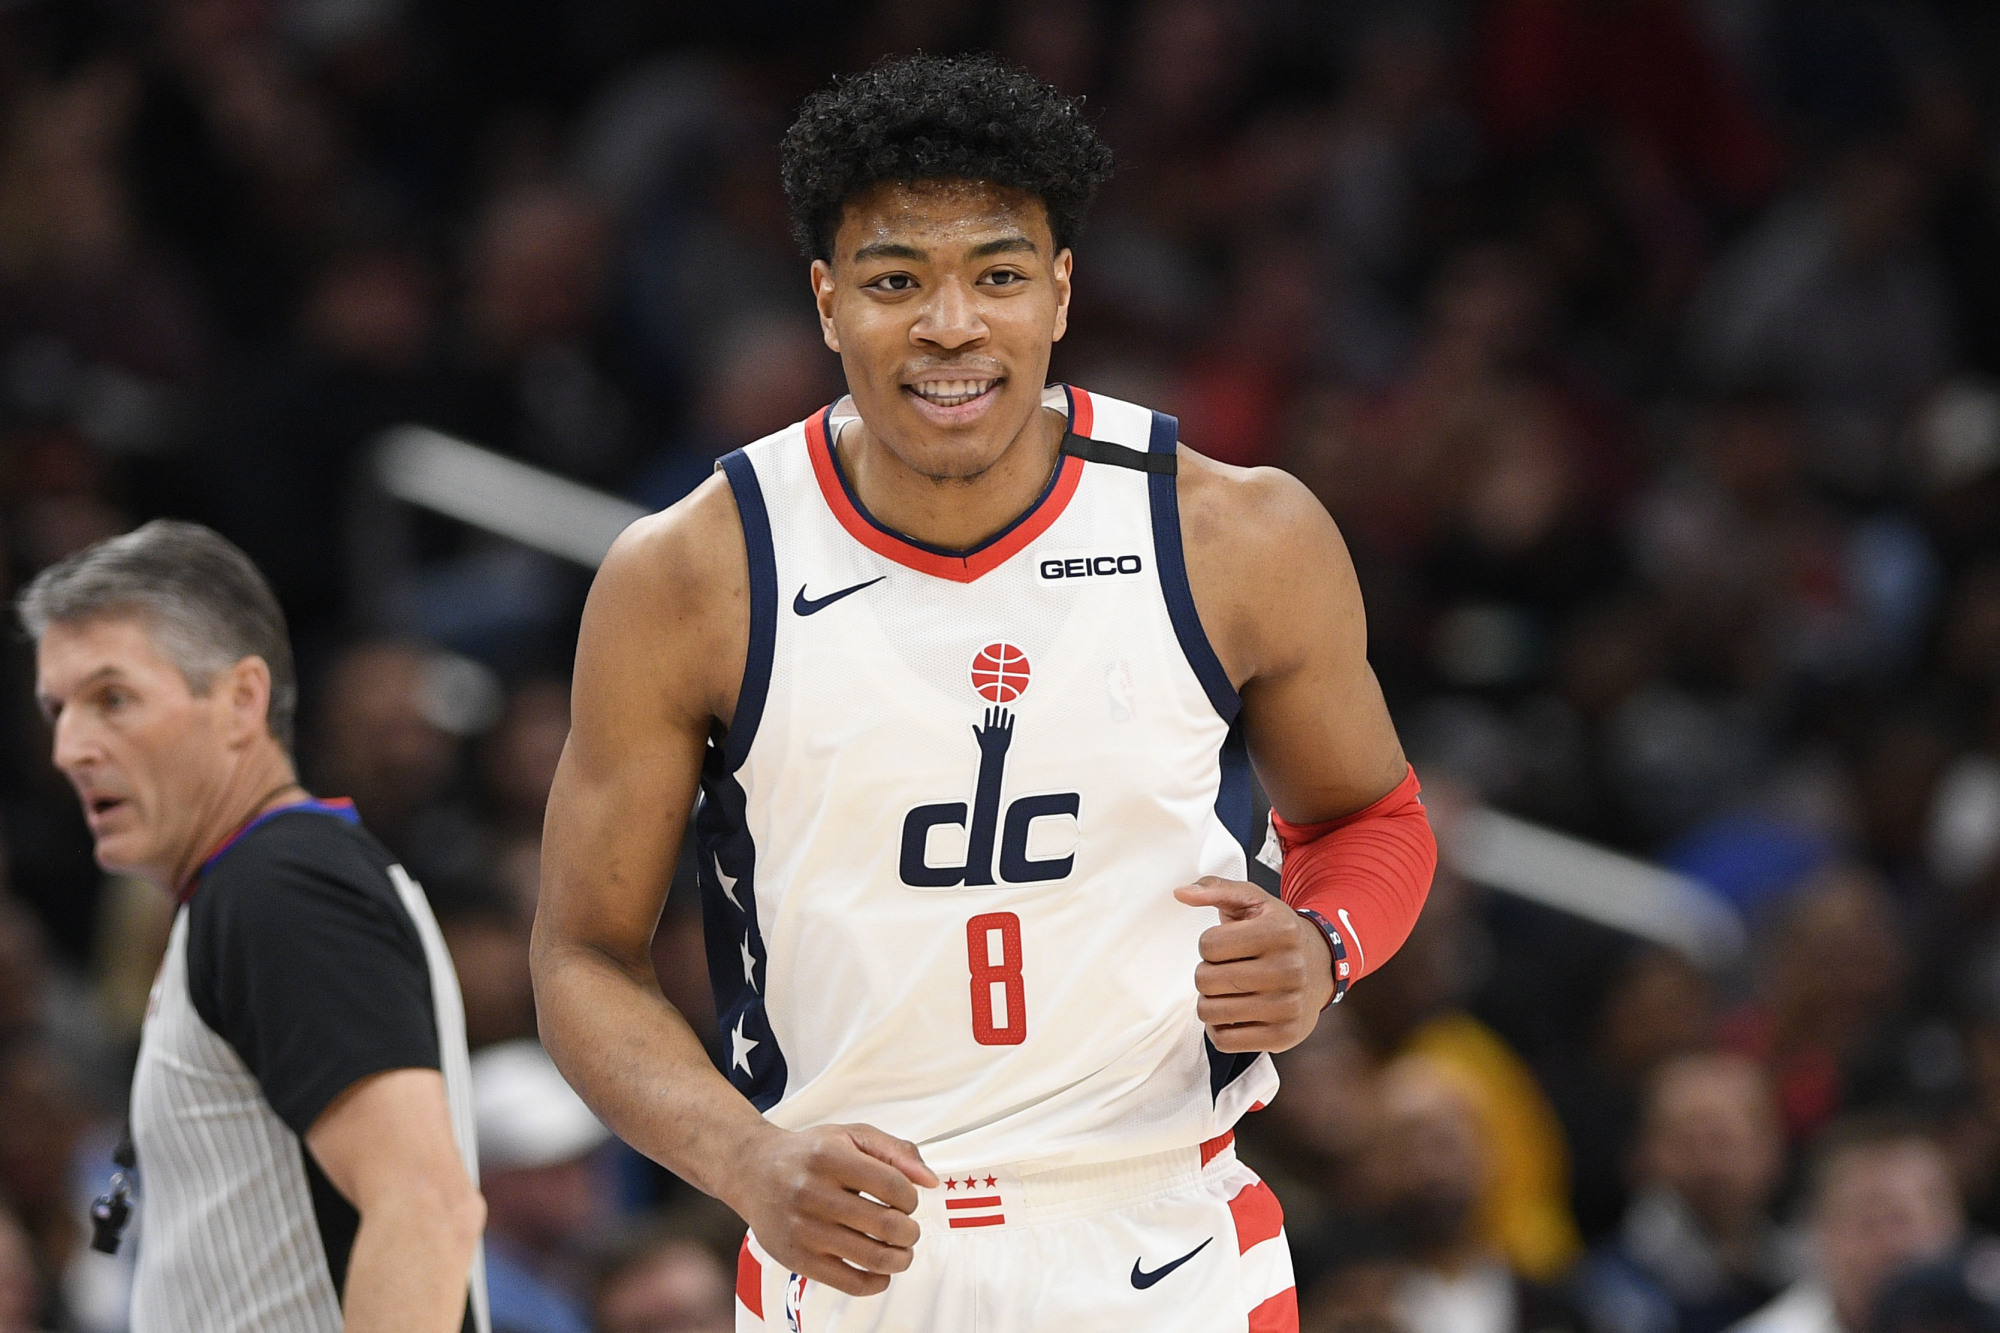 Wizards forward Rui Hachimura runs down the court during the first half of an NBA game against the Memphis Grizzlies on Sunday in Washington. | AP